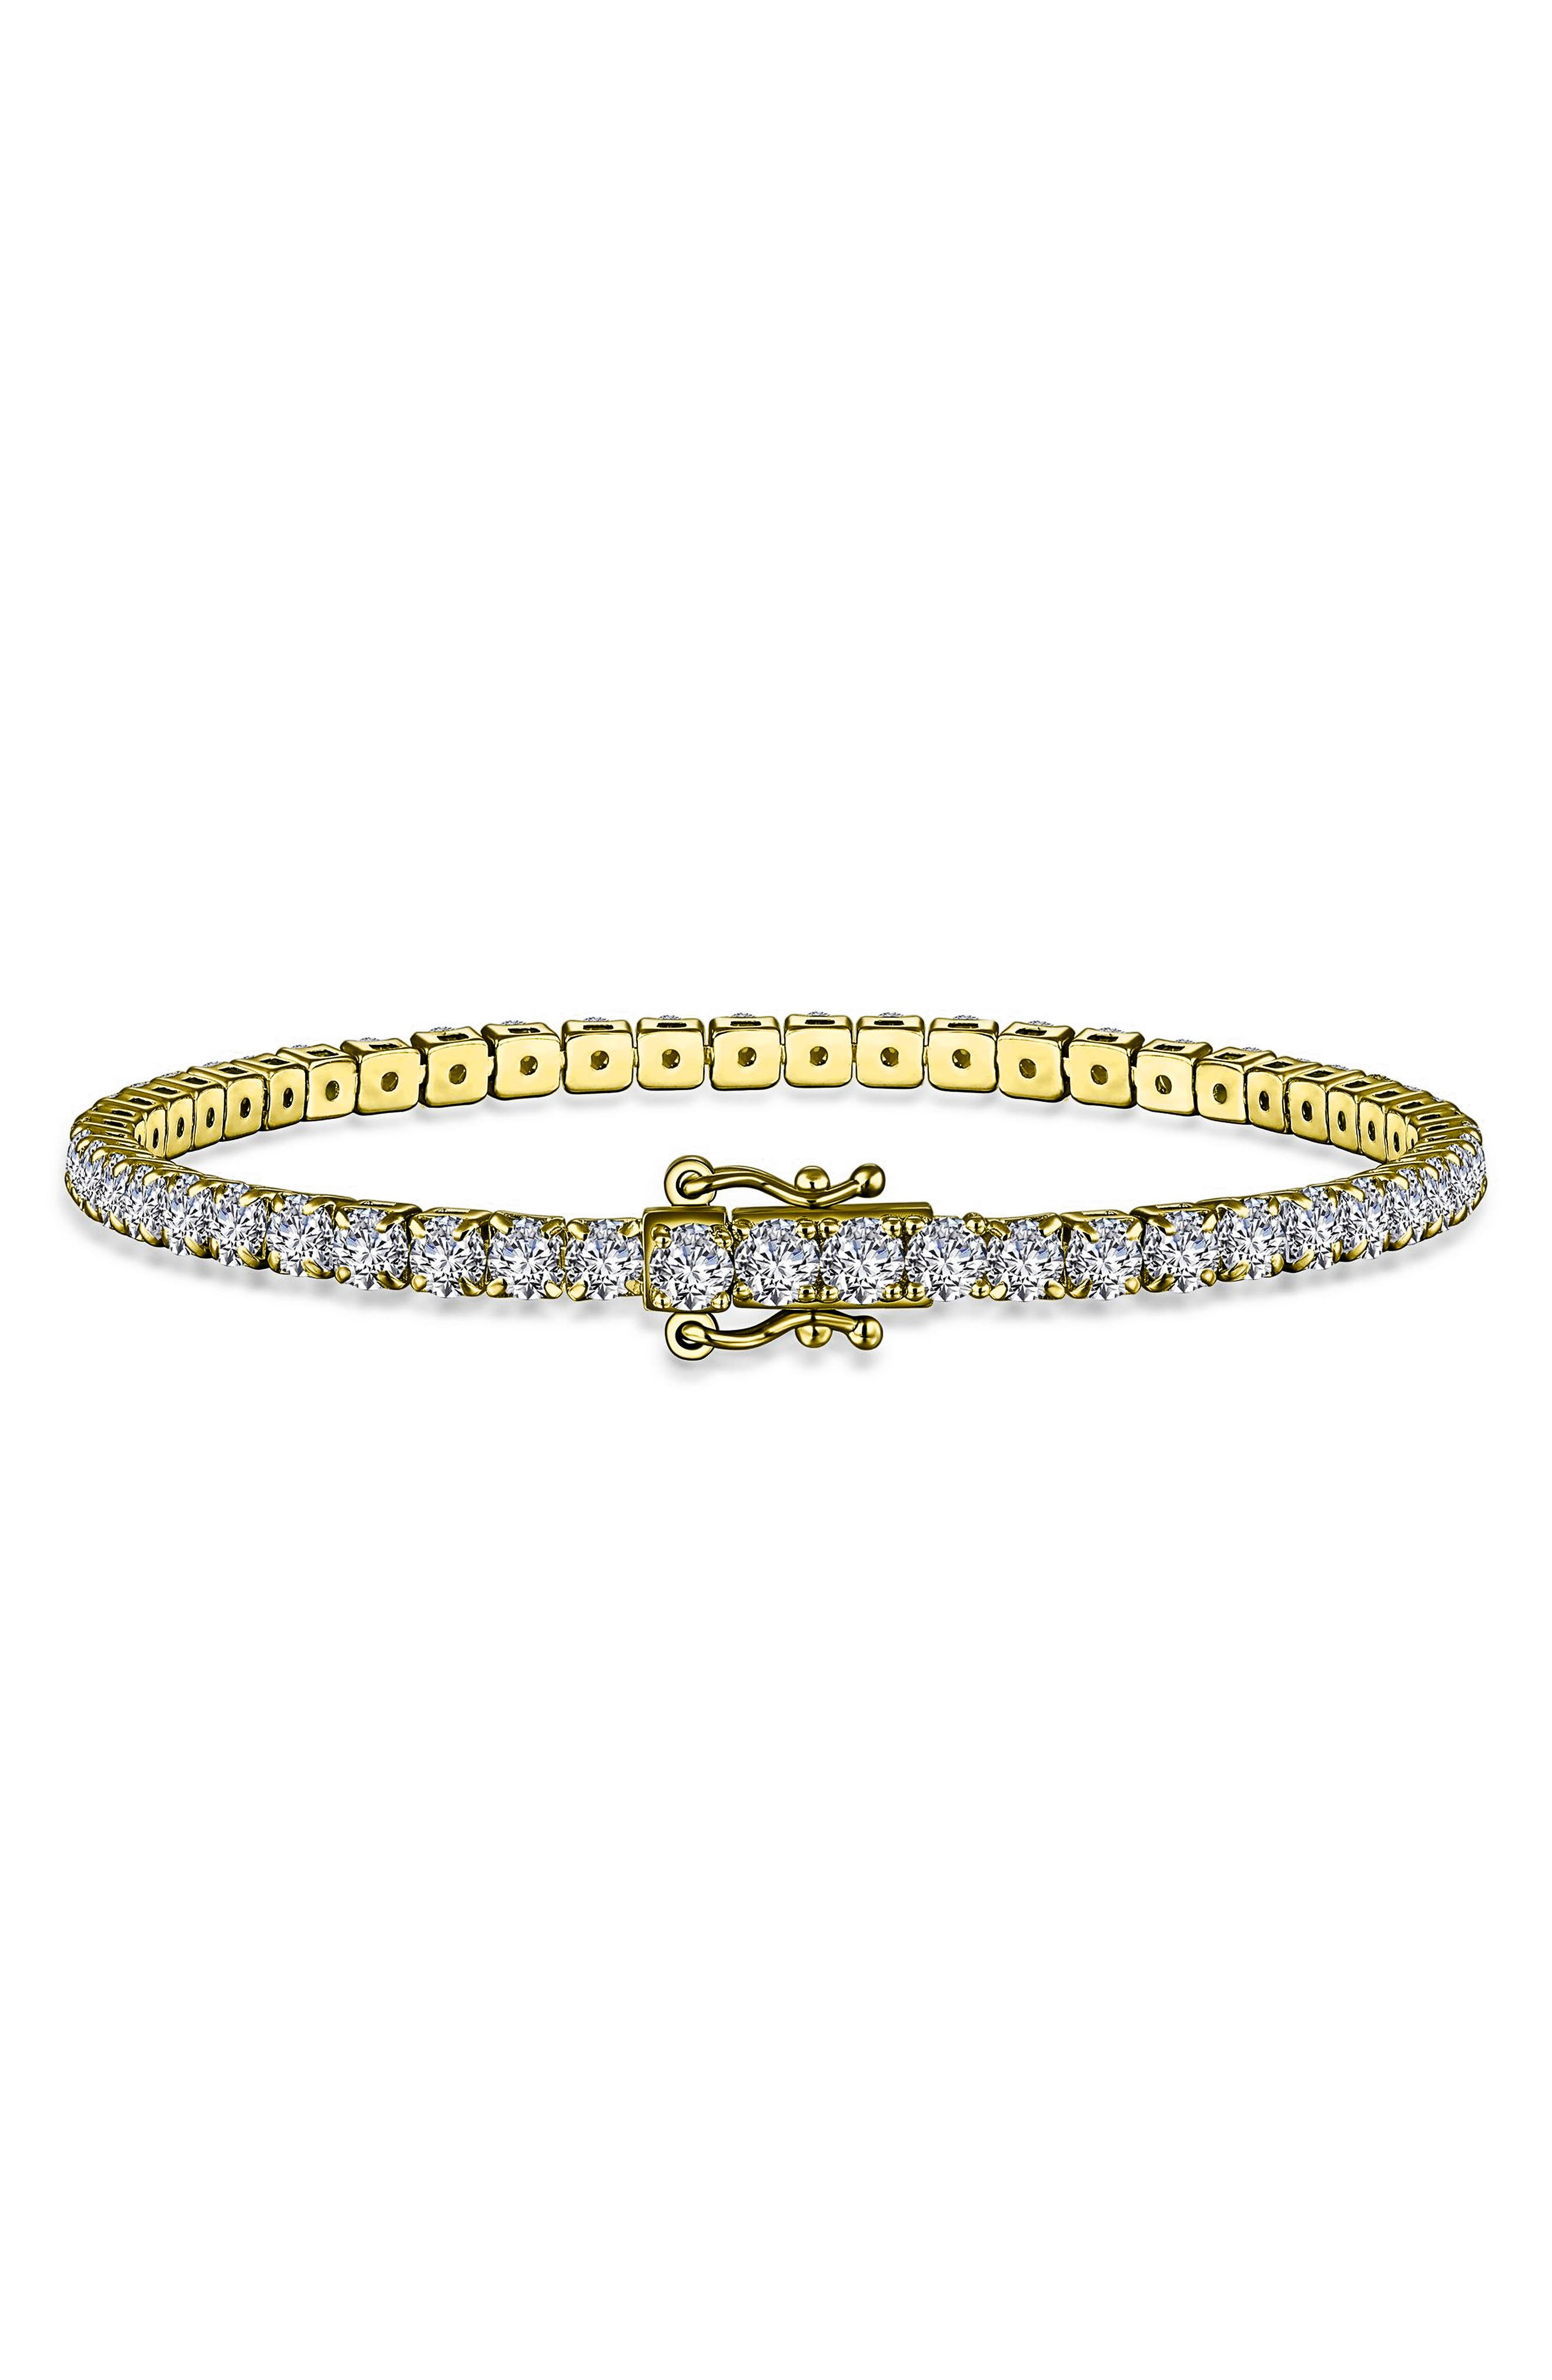 Gorgeous simulated diamonds gleam atop this dainty tennis bracelet, making it a stunning addition to your everyday rotation. Style Name: Laffon Simulated Diamond Tennis Bracelet. Style Number: 6183379. Available in stores.